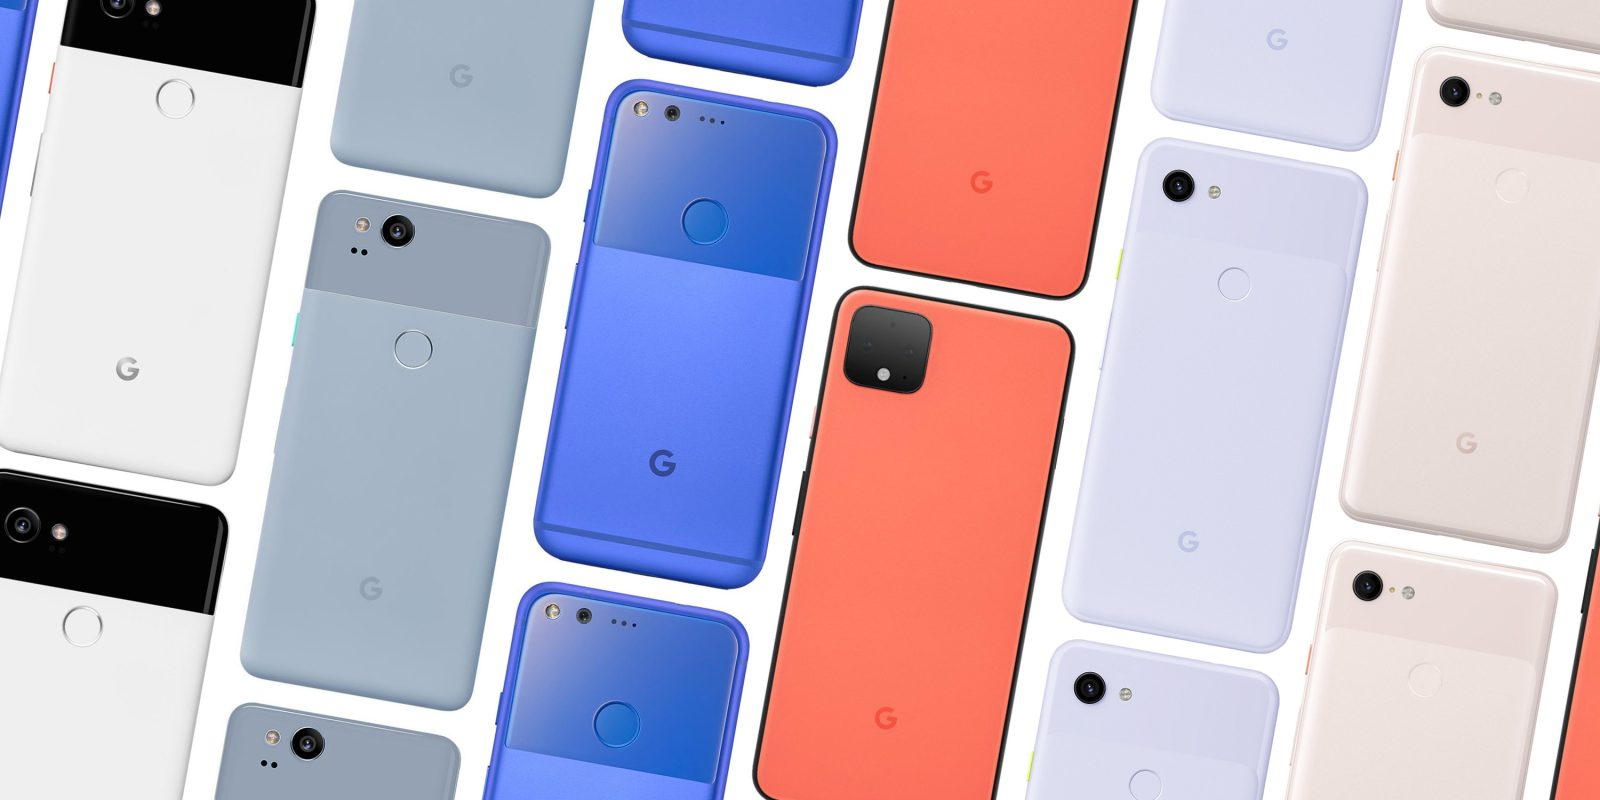 What color do you want Google to use on the next Pixel? [Poll]